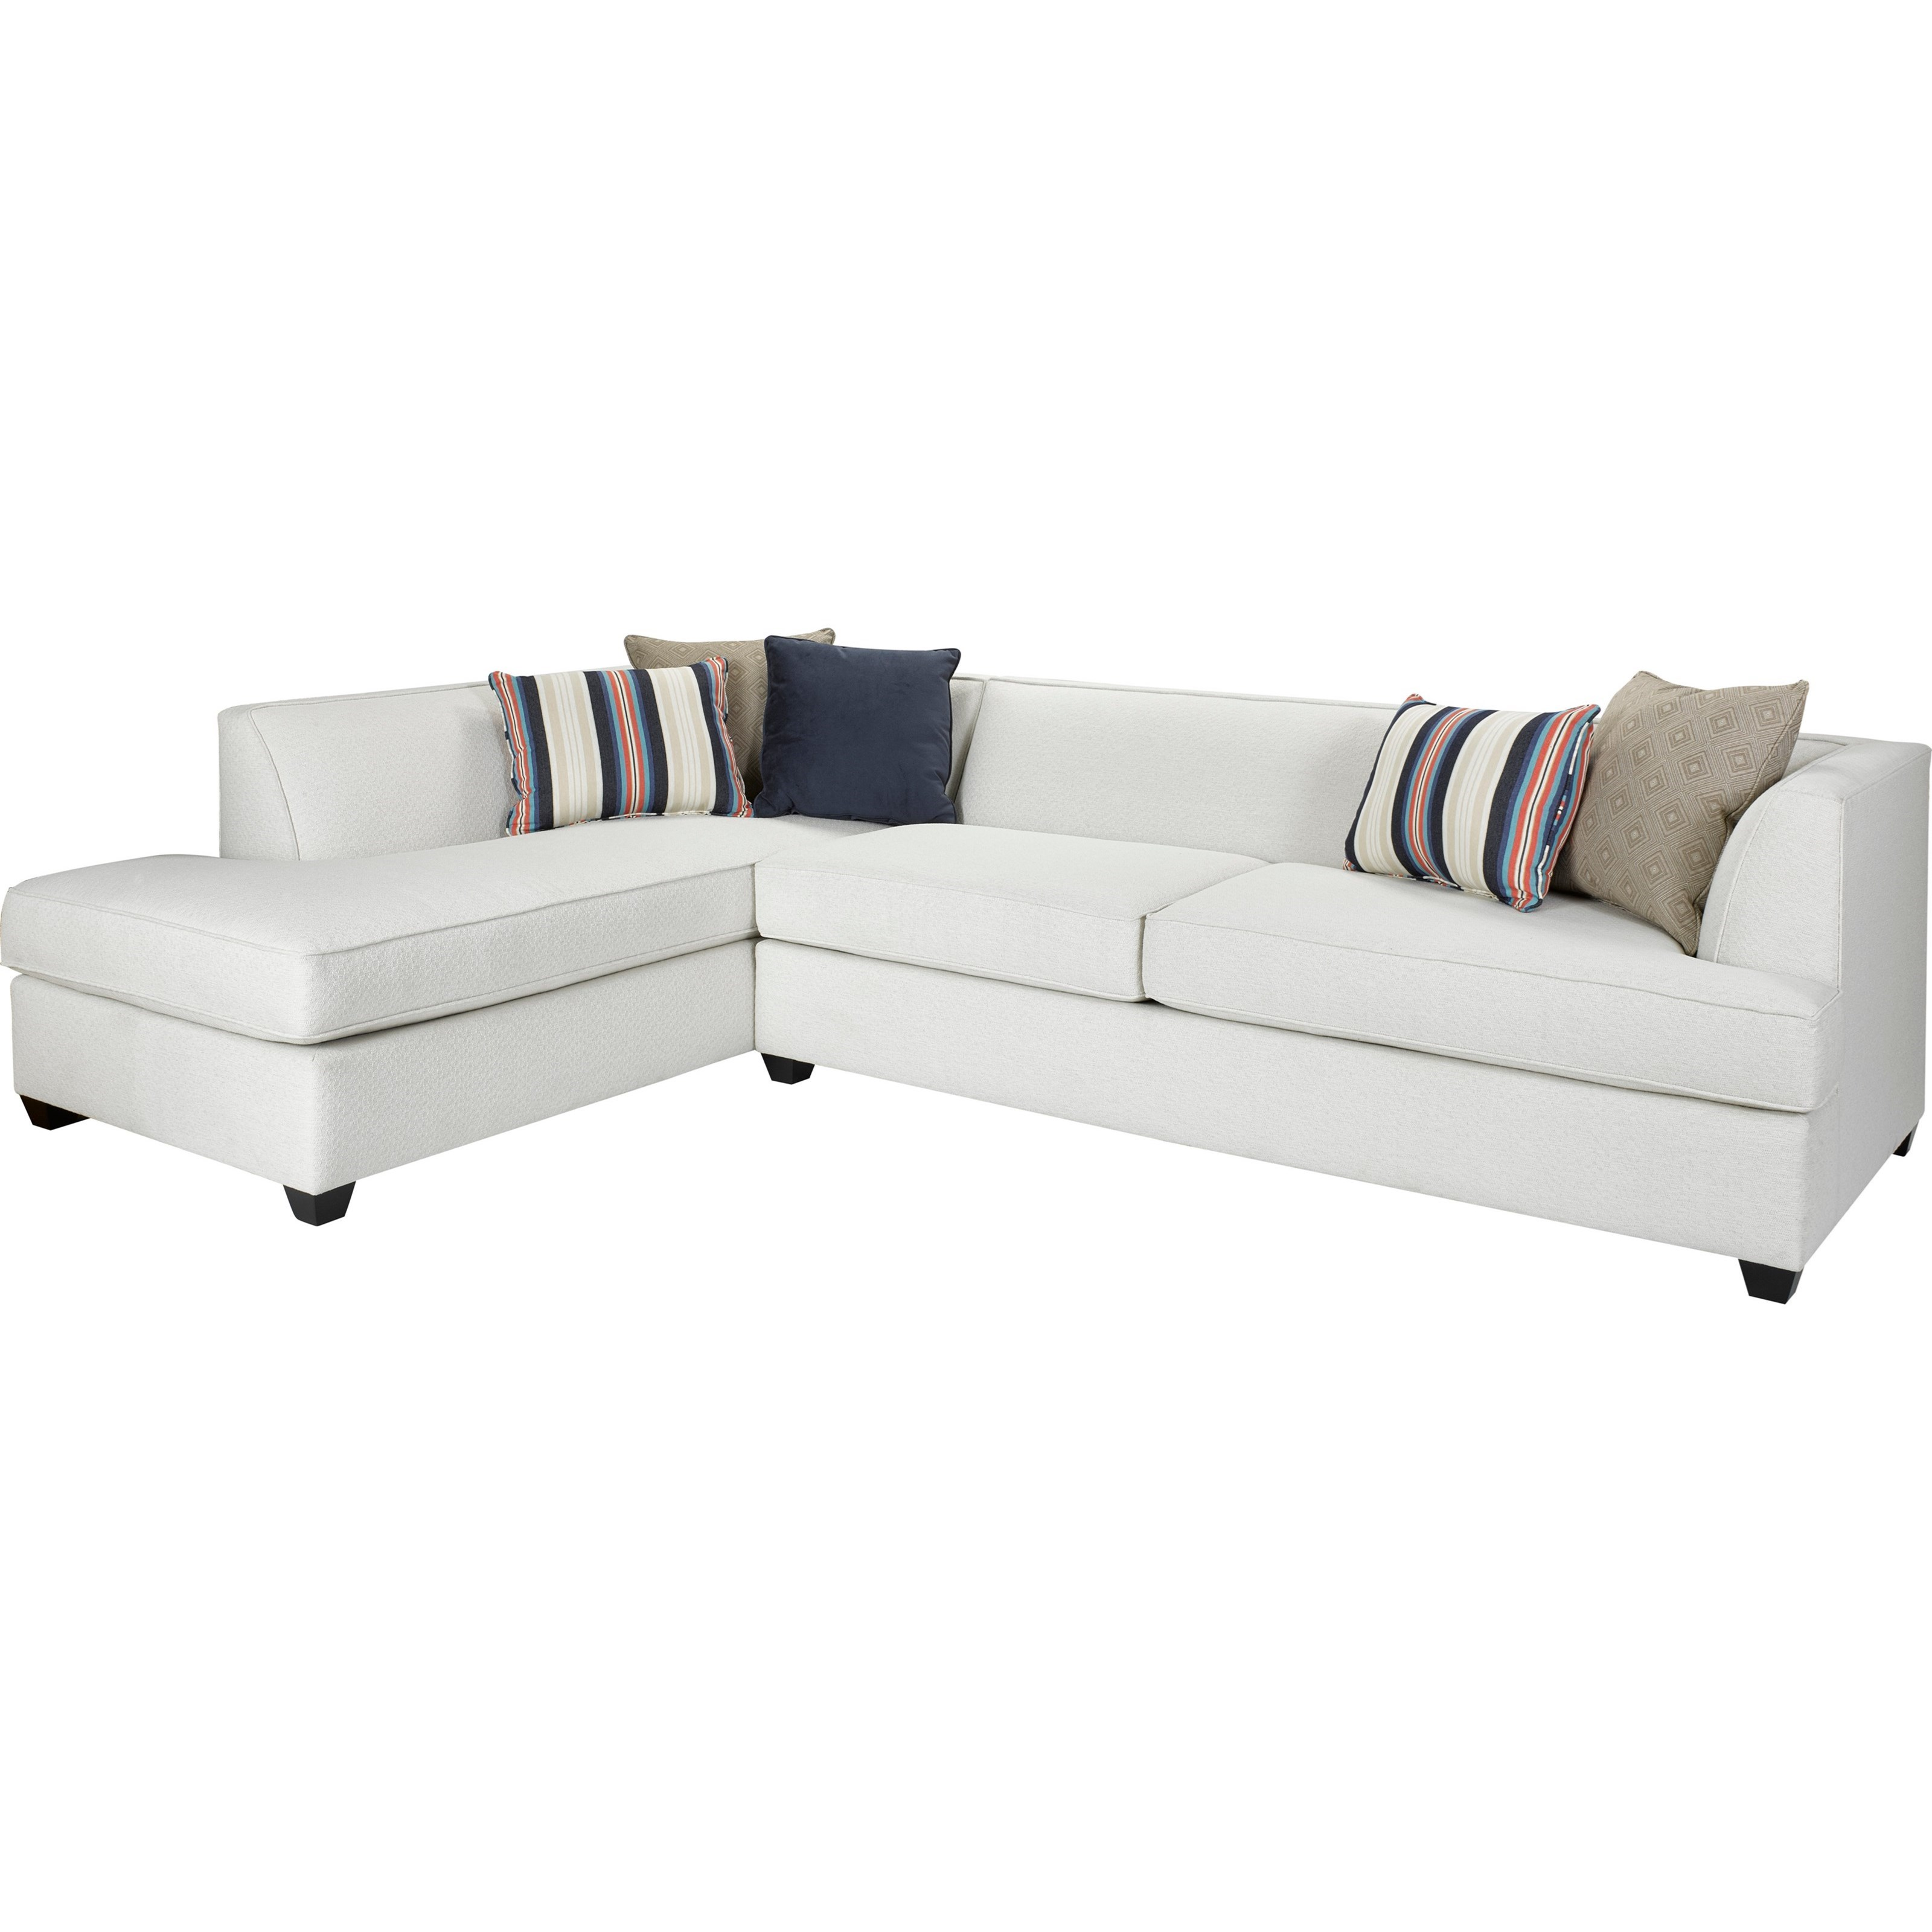 Broyhill furniture farida 2 piece sectional sofa with laf for Broyhill caitlyn chaise